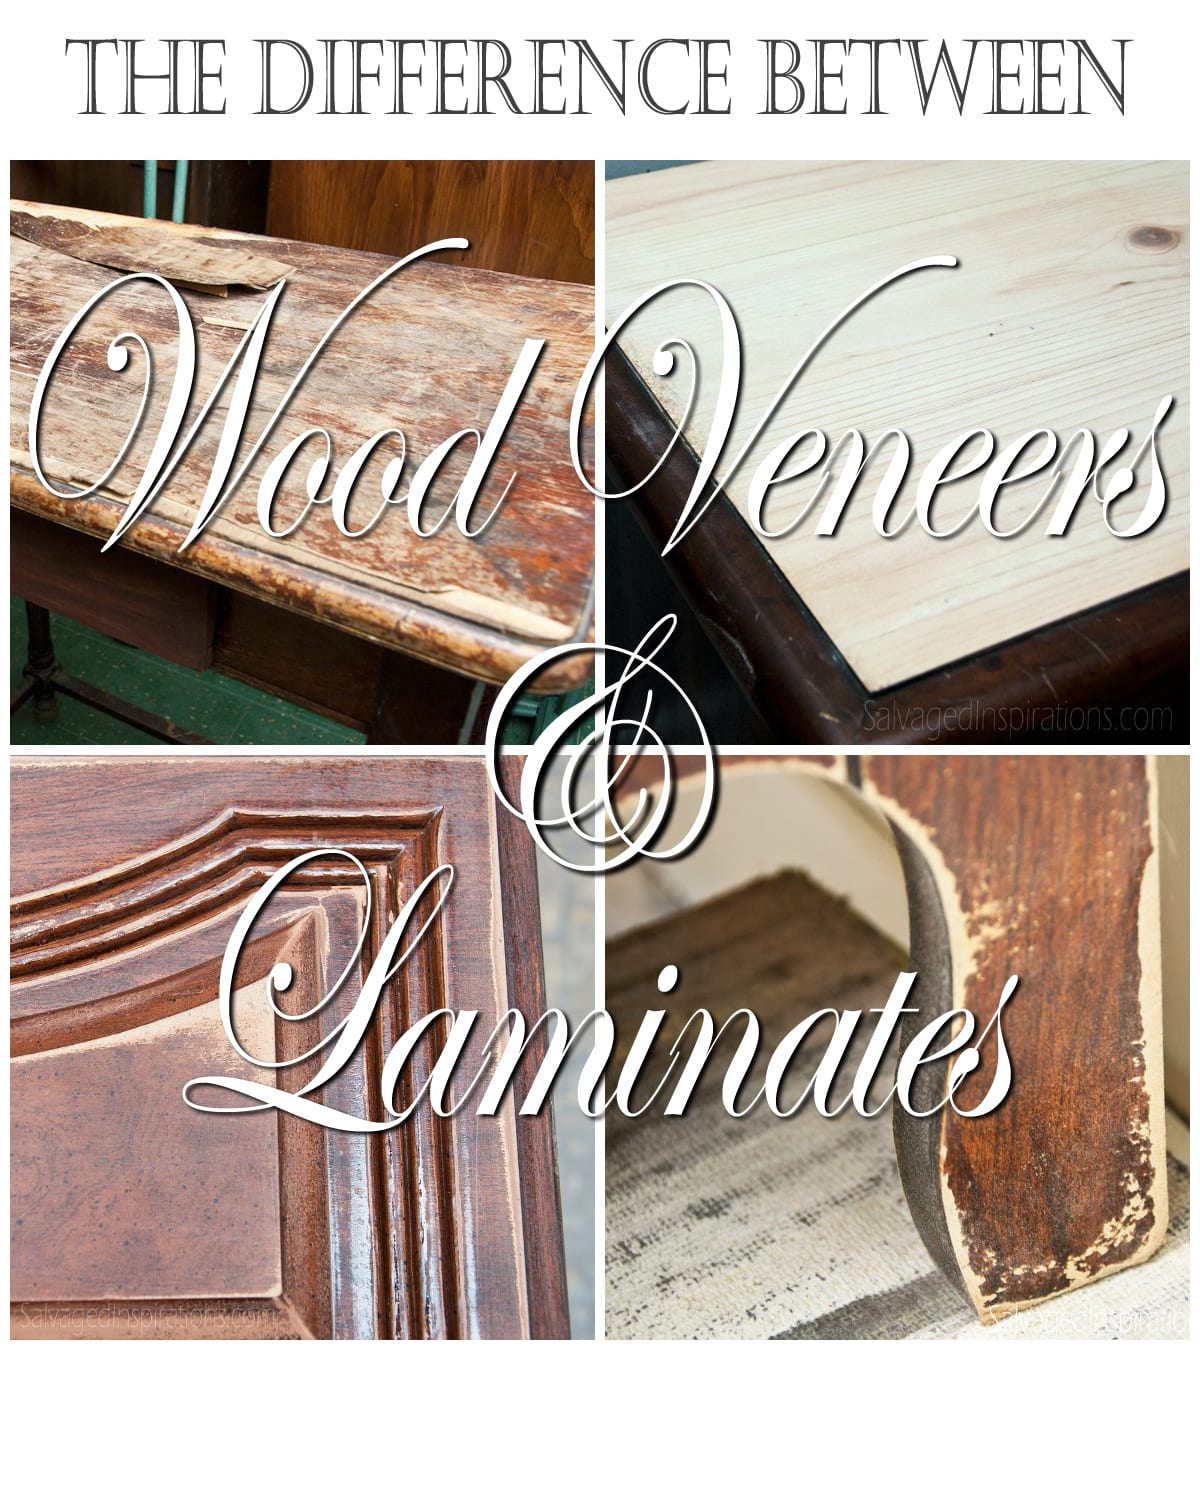 Veneer sheets for cabinets - Difference Between Wood Veneer And Laminate